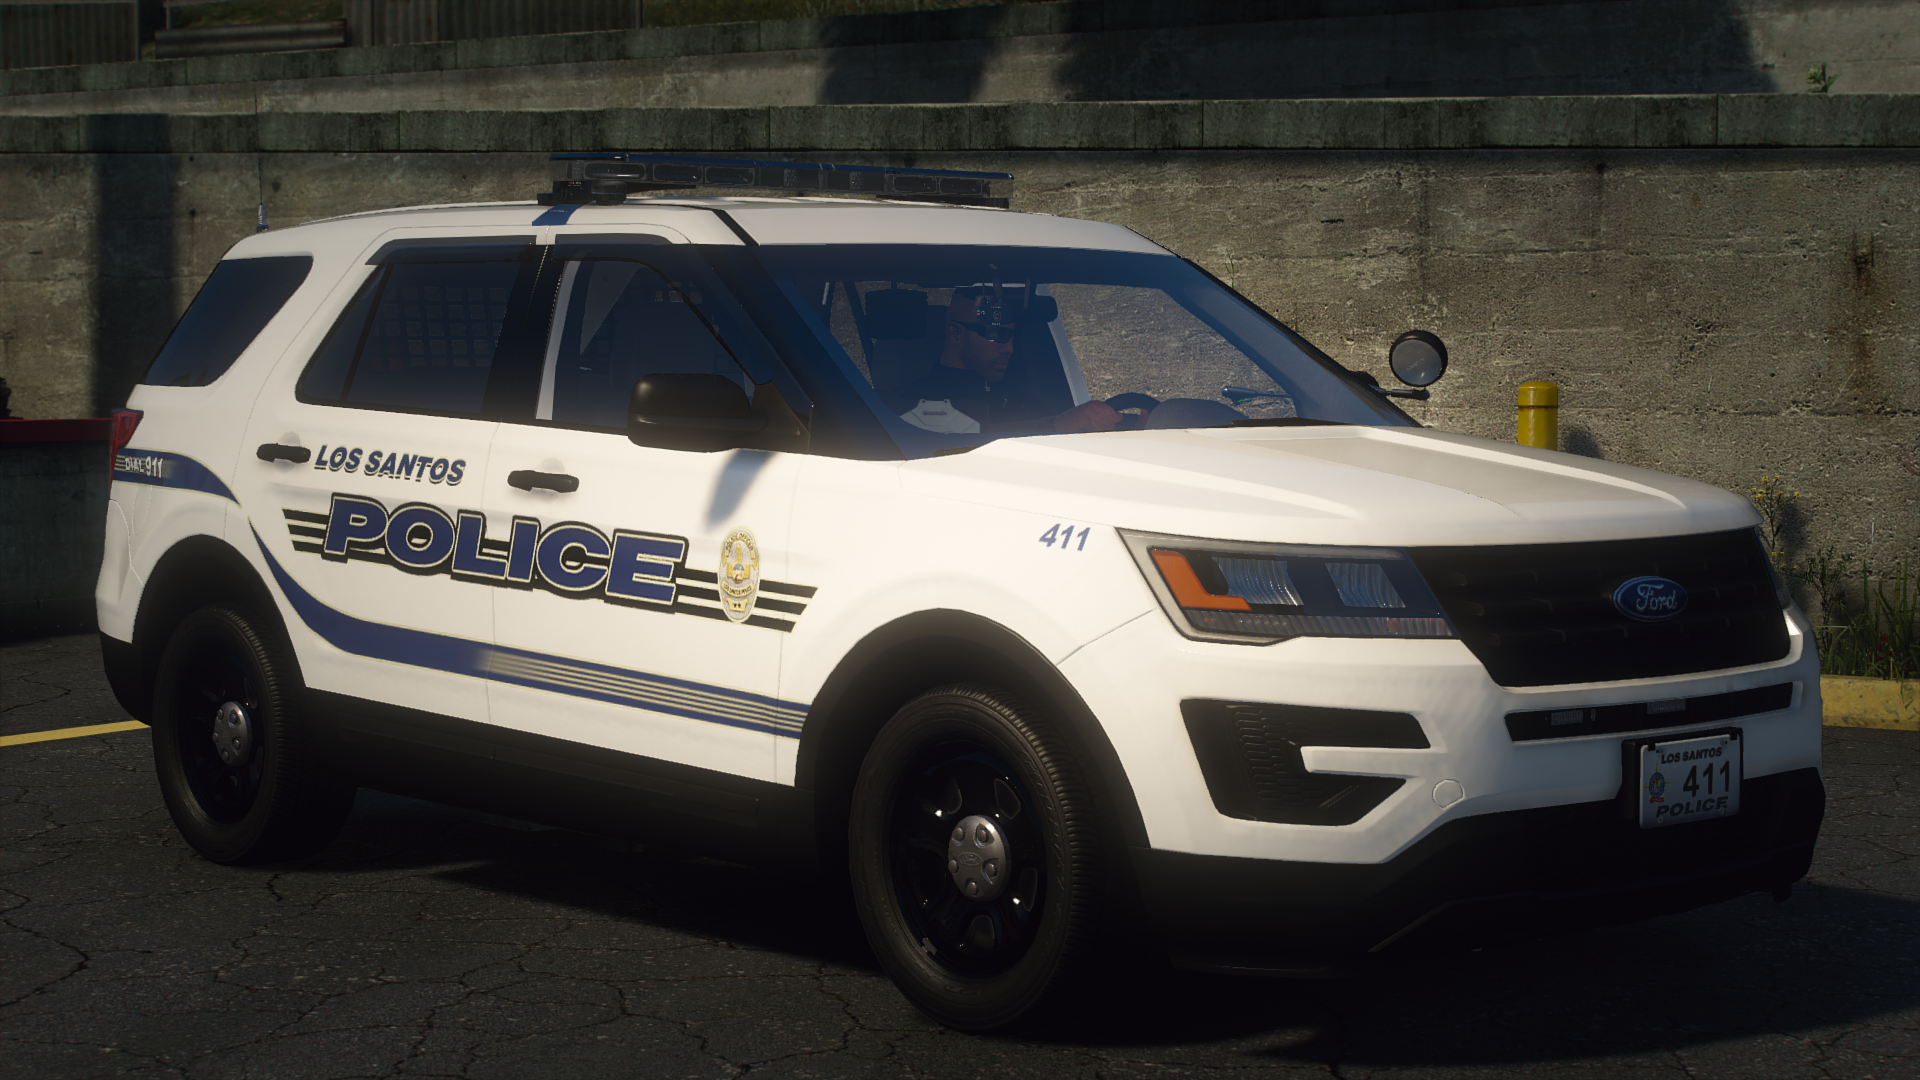 LSPD - St. Charles MO